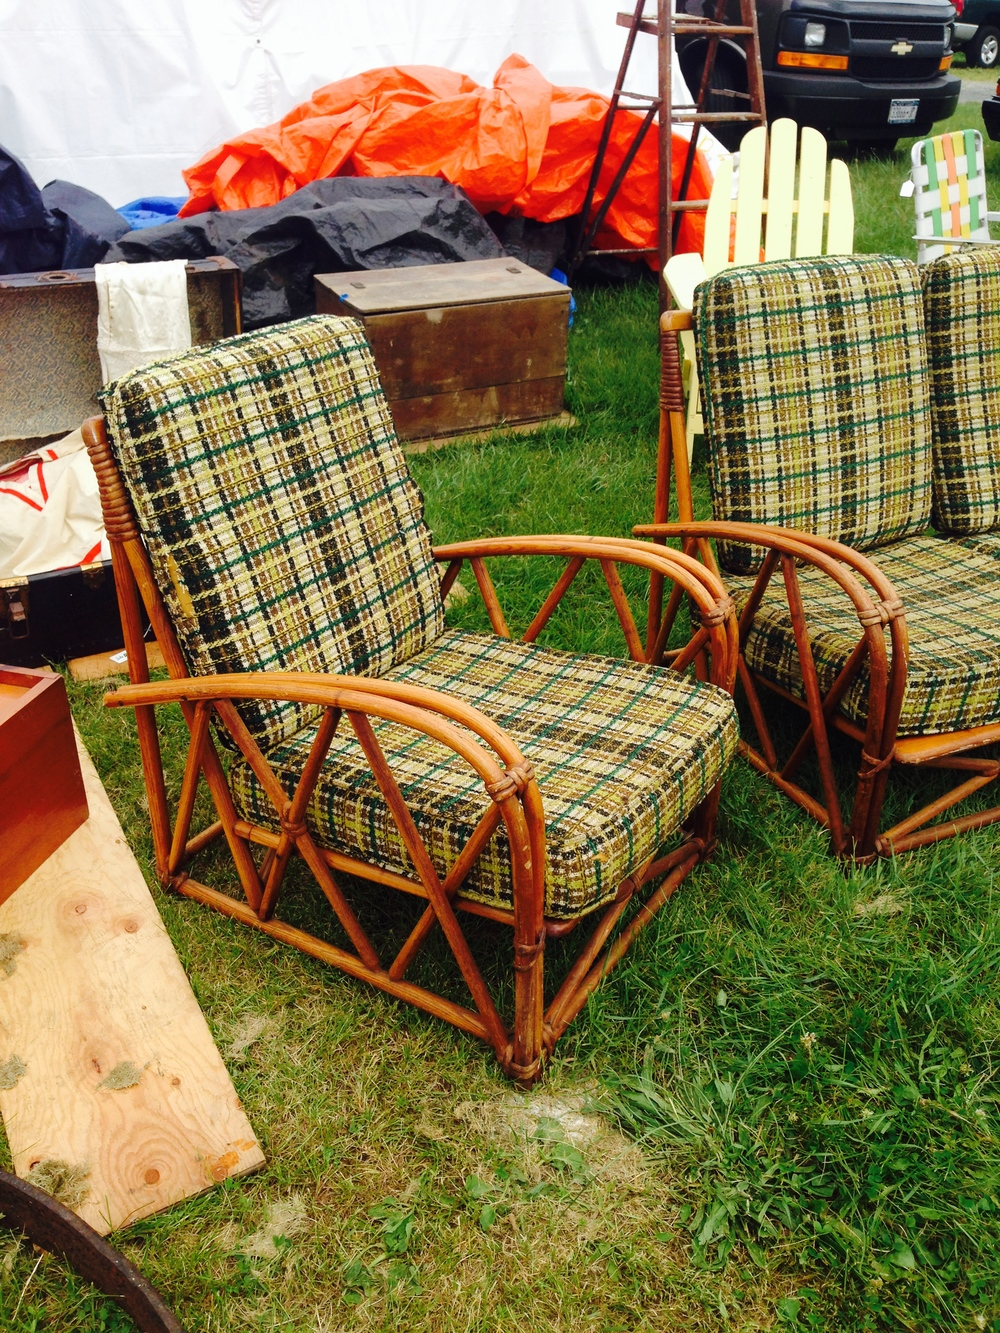 These rattan chairs were great because they are low to the ground and cozy. Needs new cushions.